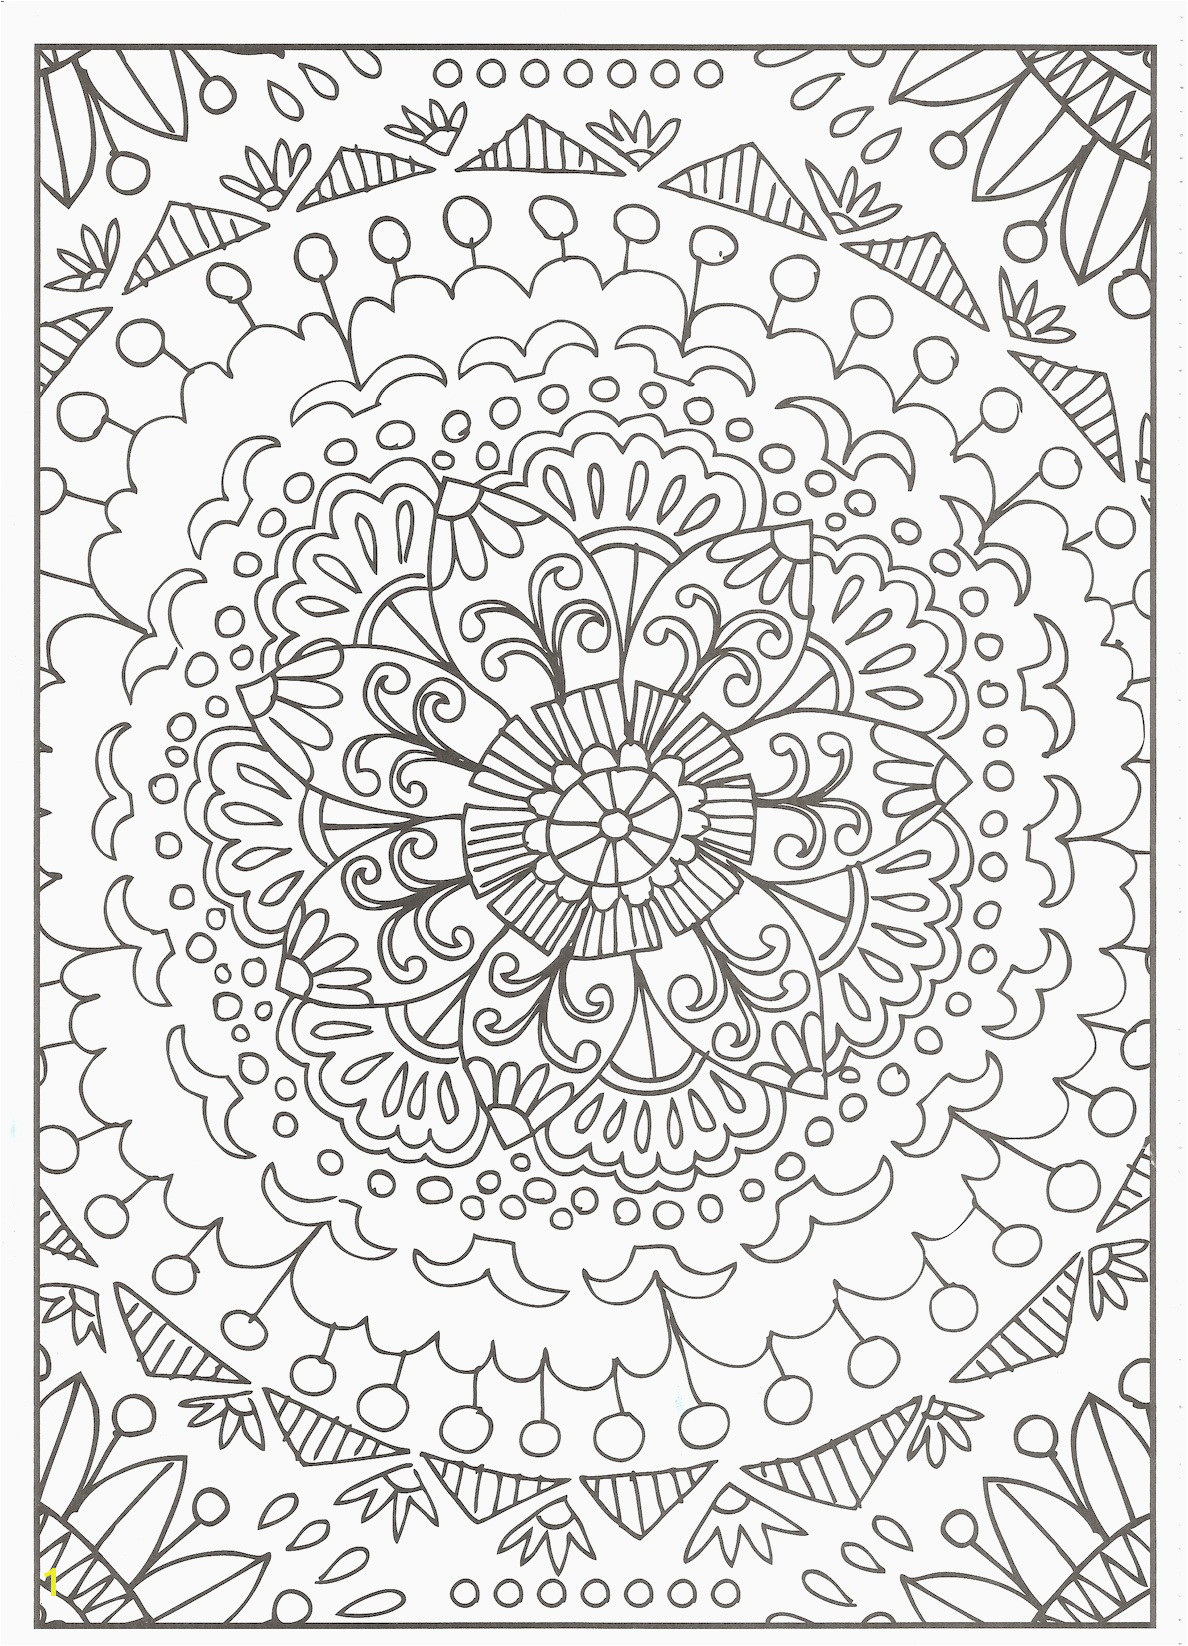 Free Dog Coloring Pages New Best Od Dog Coloring Pages Free Colouring Pages – Fun Time